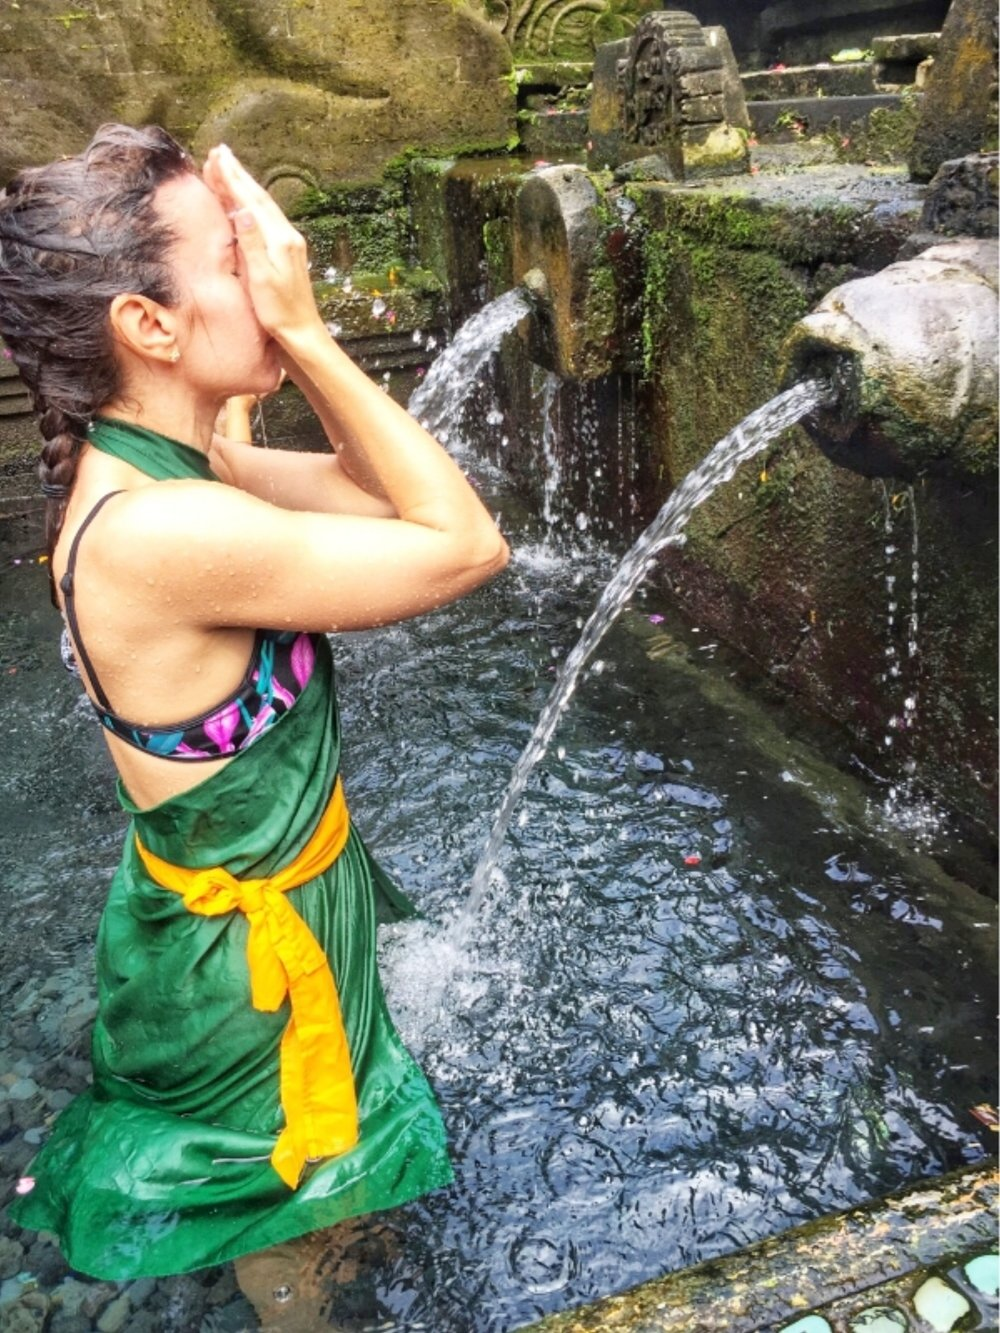 The ritual of Bali's Holy Water Spring